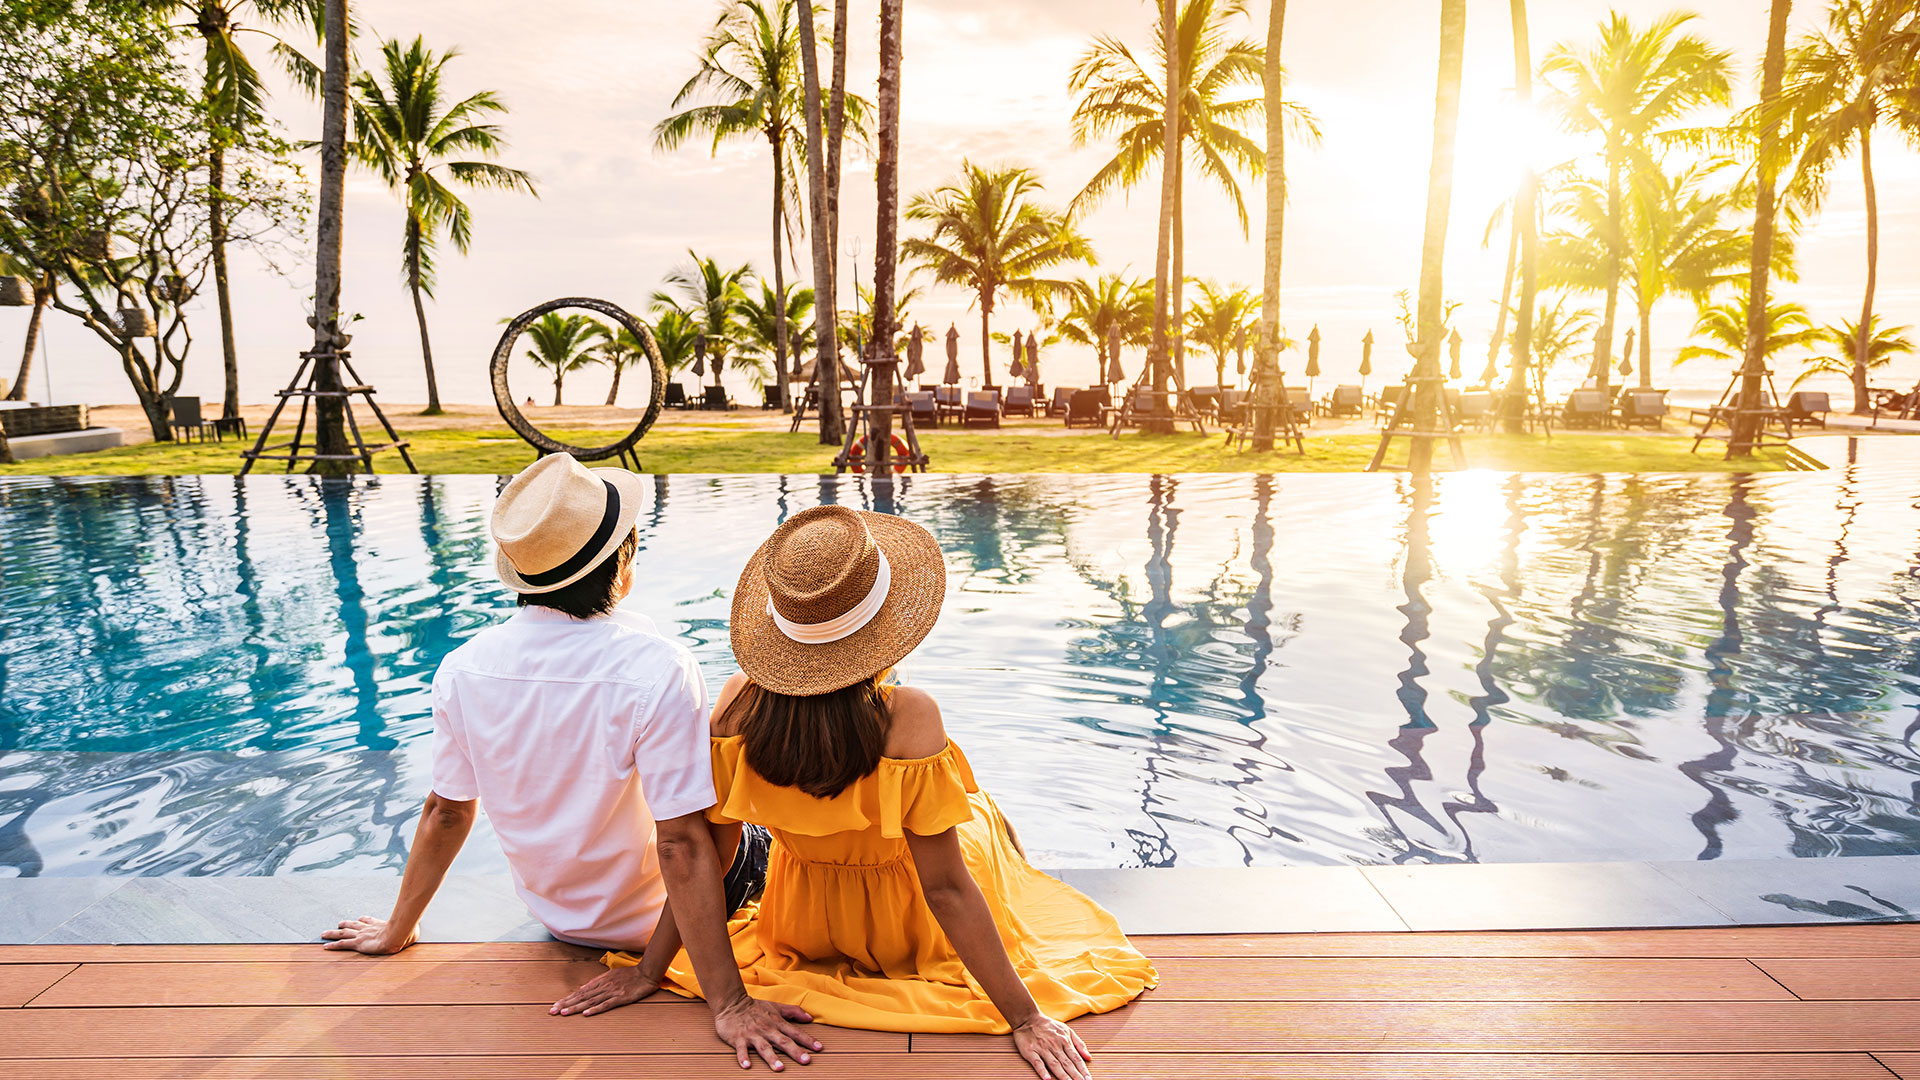 Hotels in Phuket Thailand for The Thailand International Boat Show